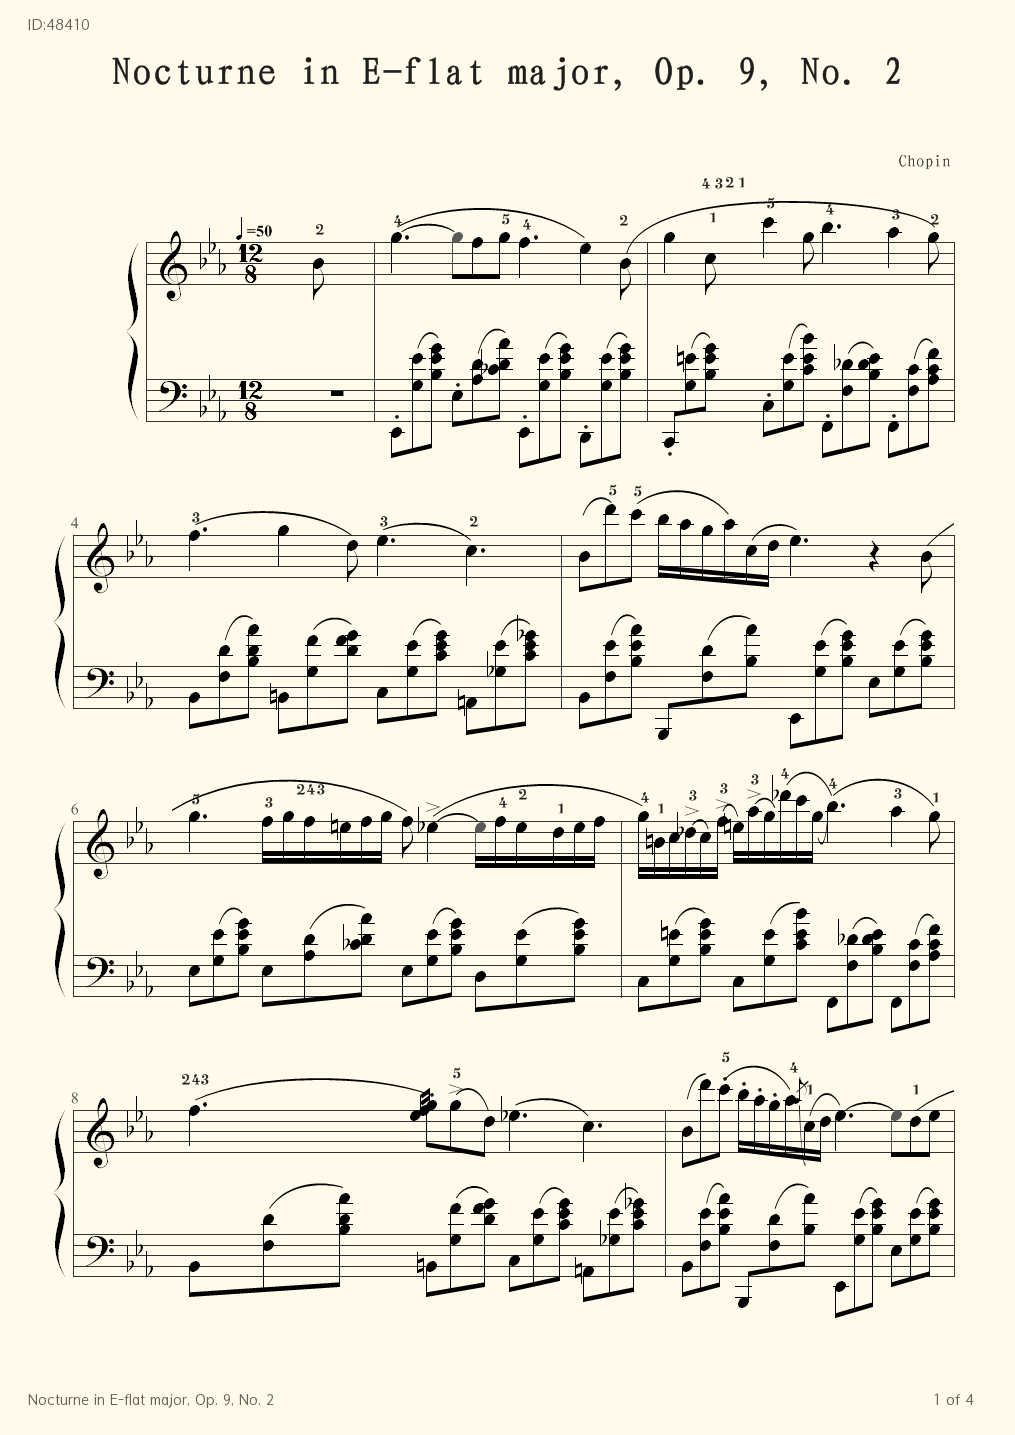 Nocturne in E-flat major, Op. 9, No. 2 - Chopin - first page